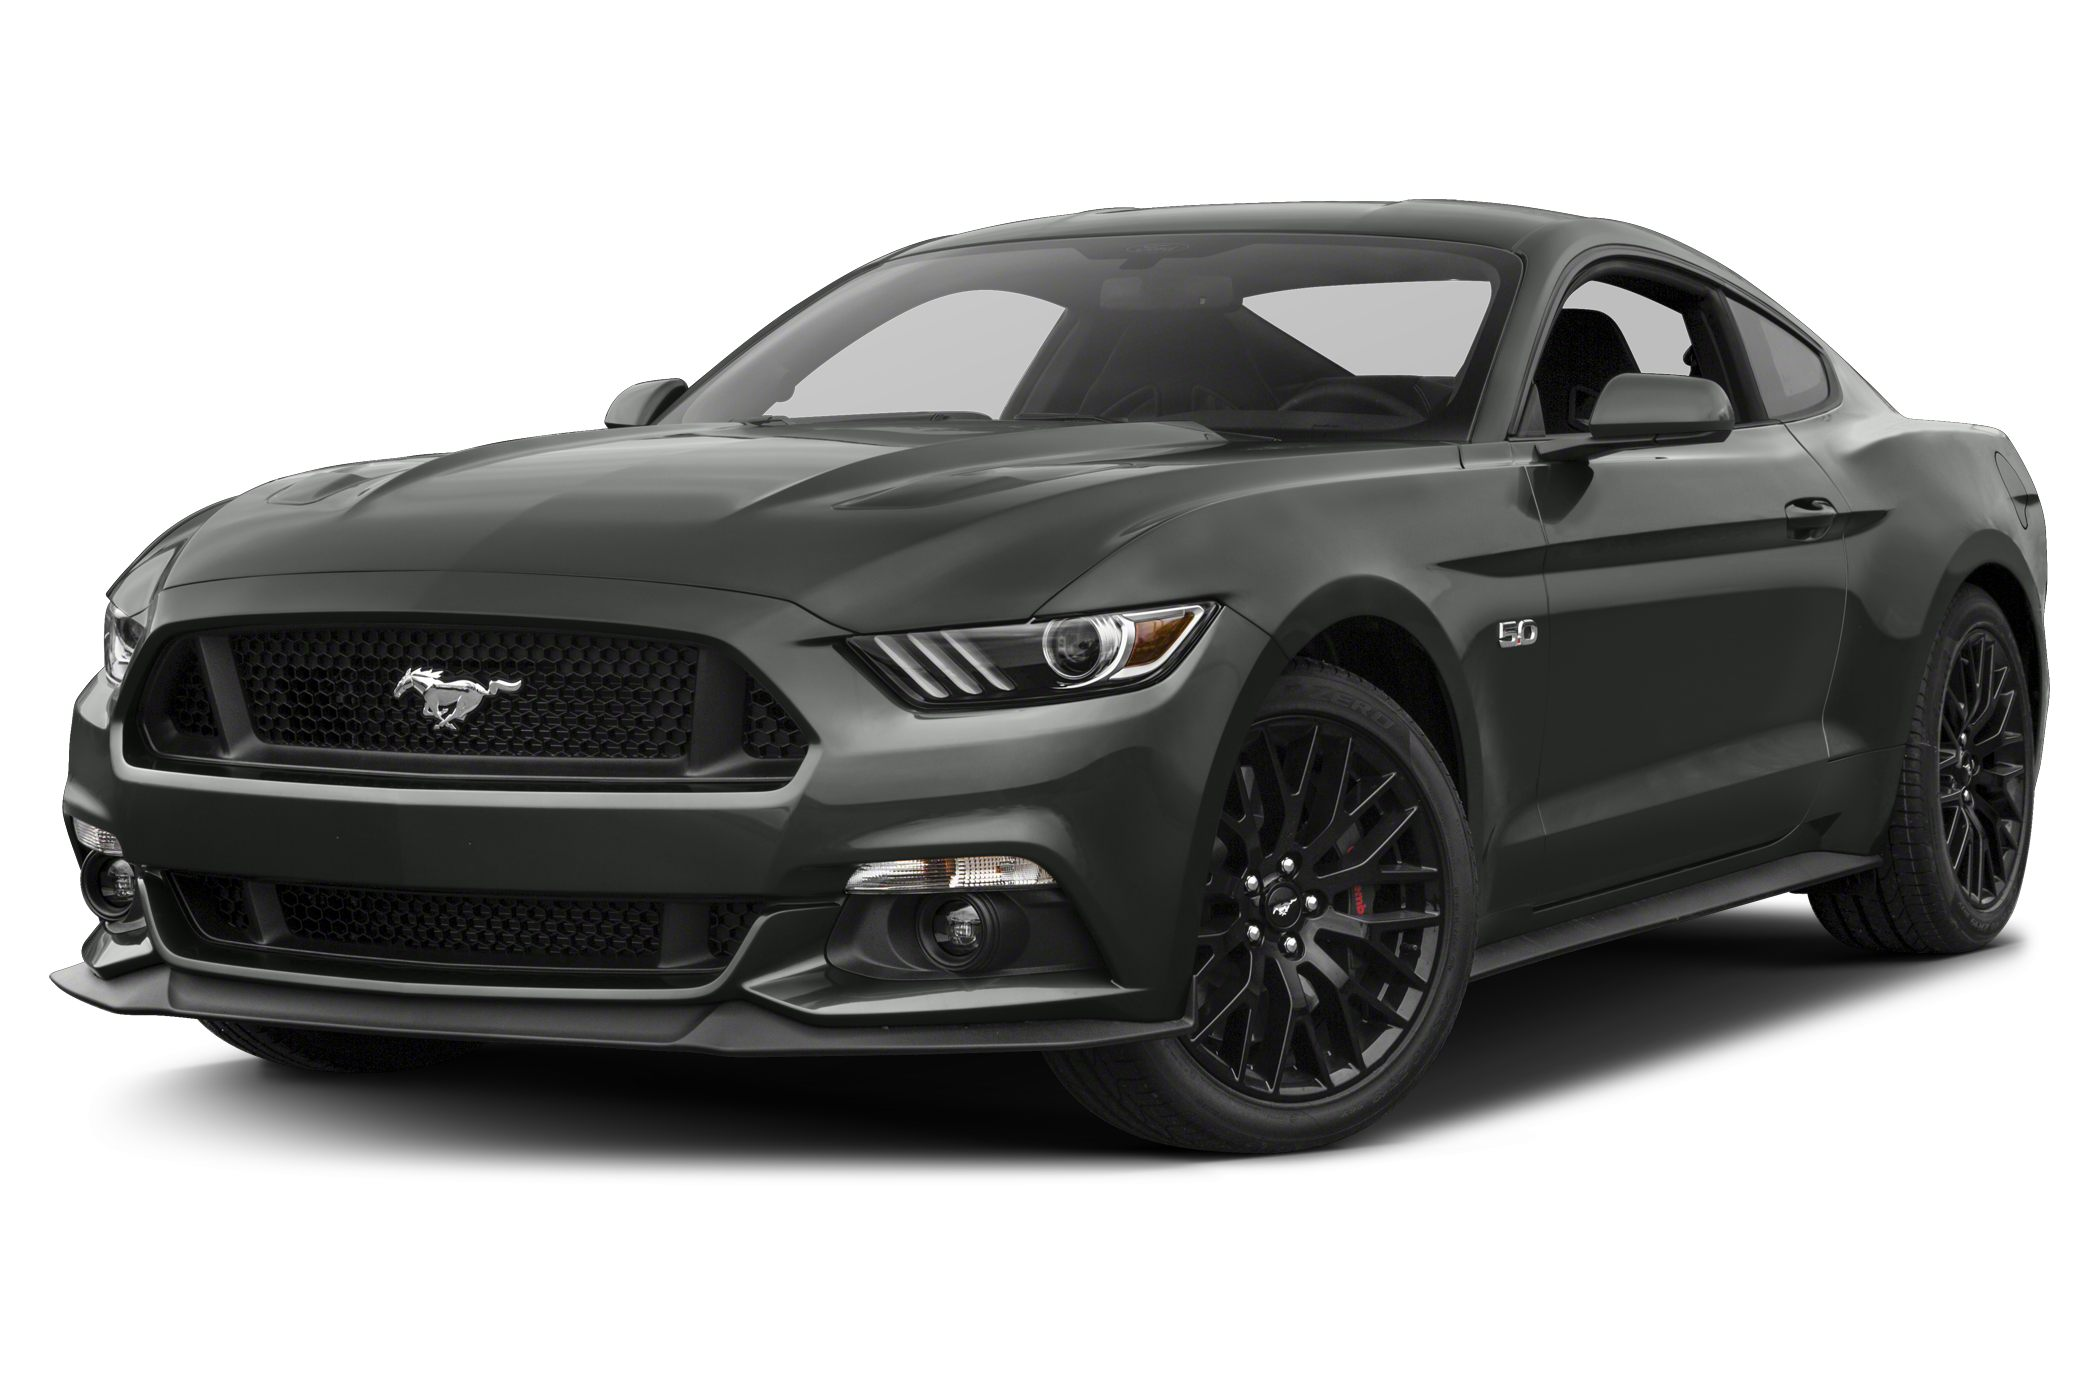 2015 Ford Mustang GT Coupe for sale in Augusta for $40,265 with 0 miles